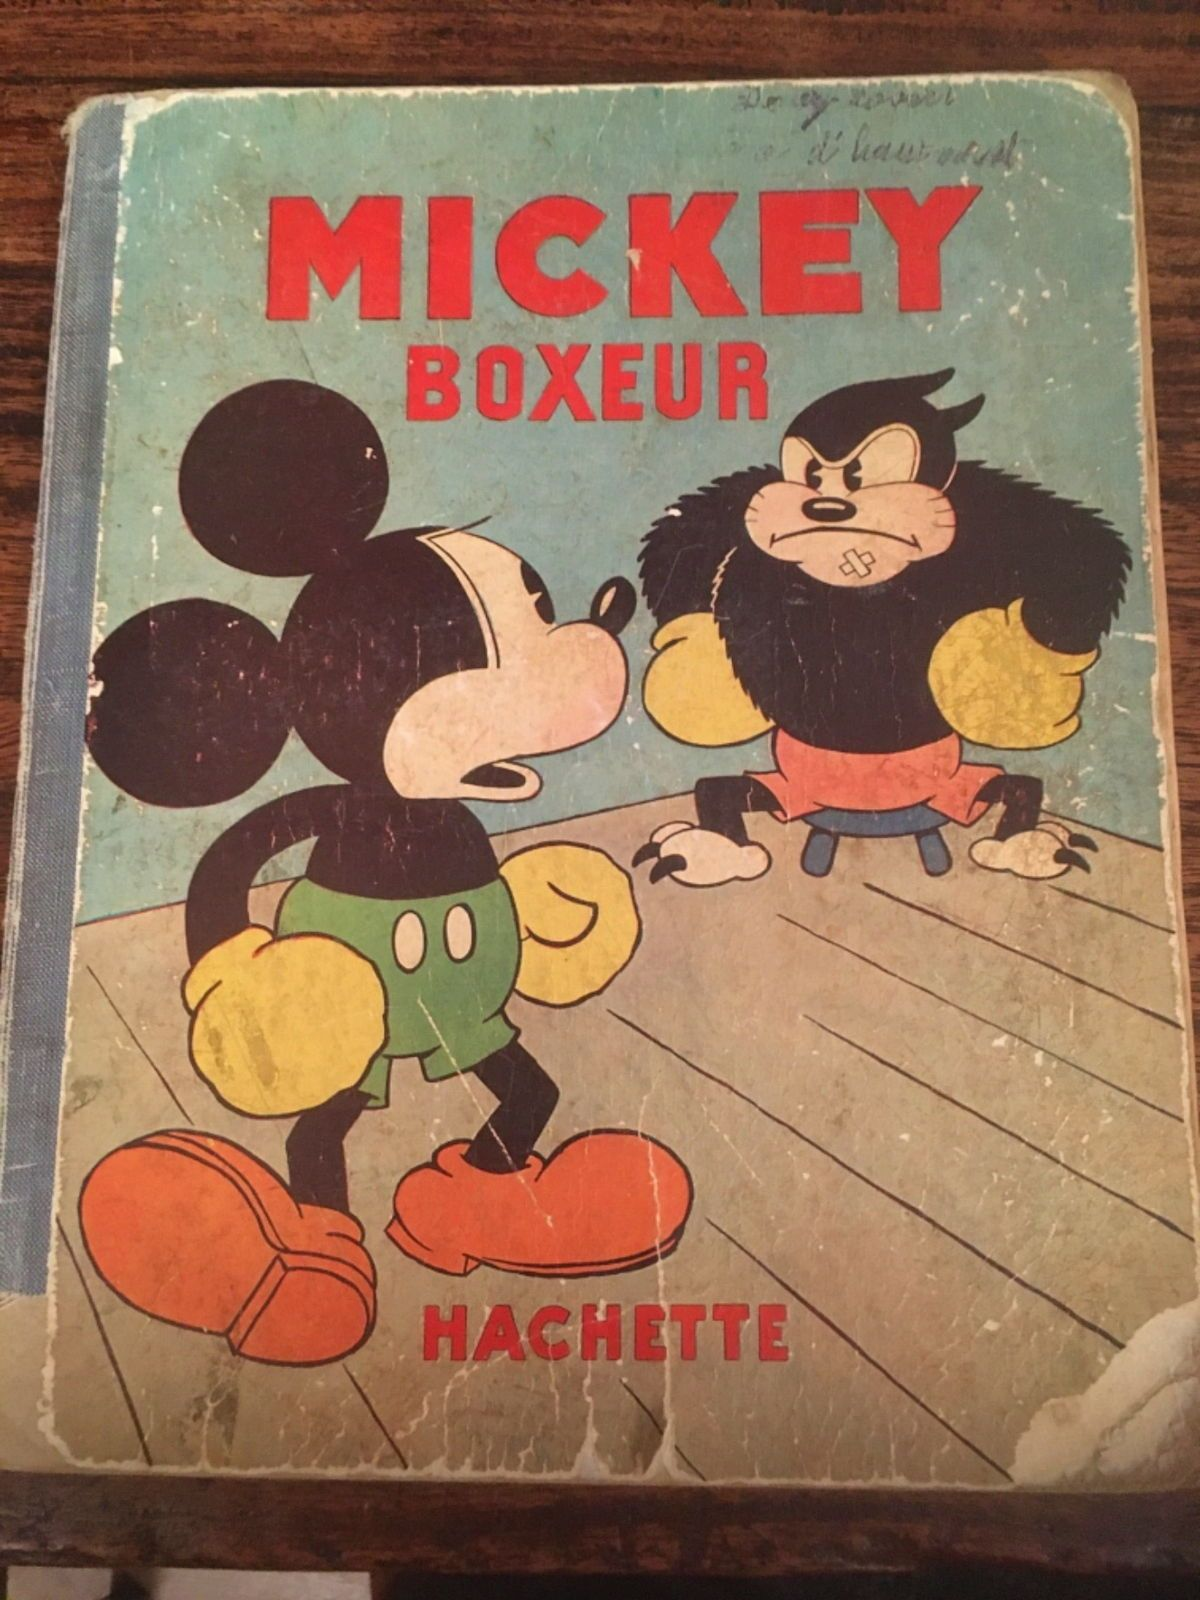 BD ancienne, collector - Mickey boxeur 1932